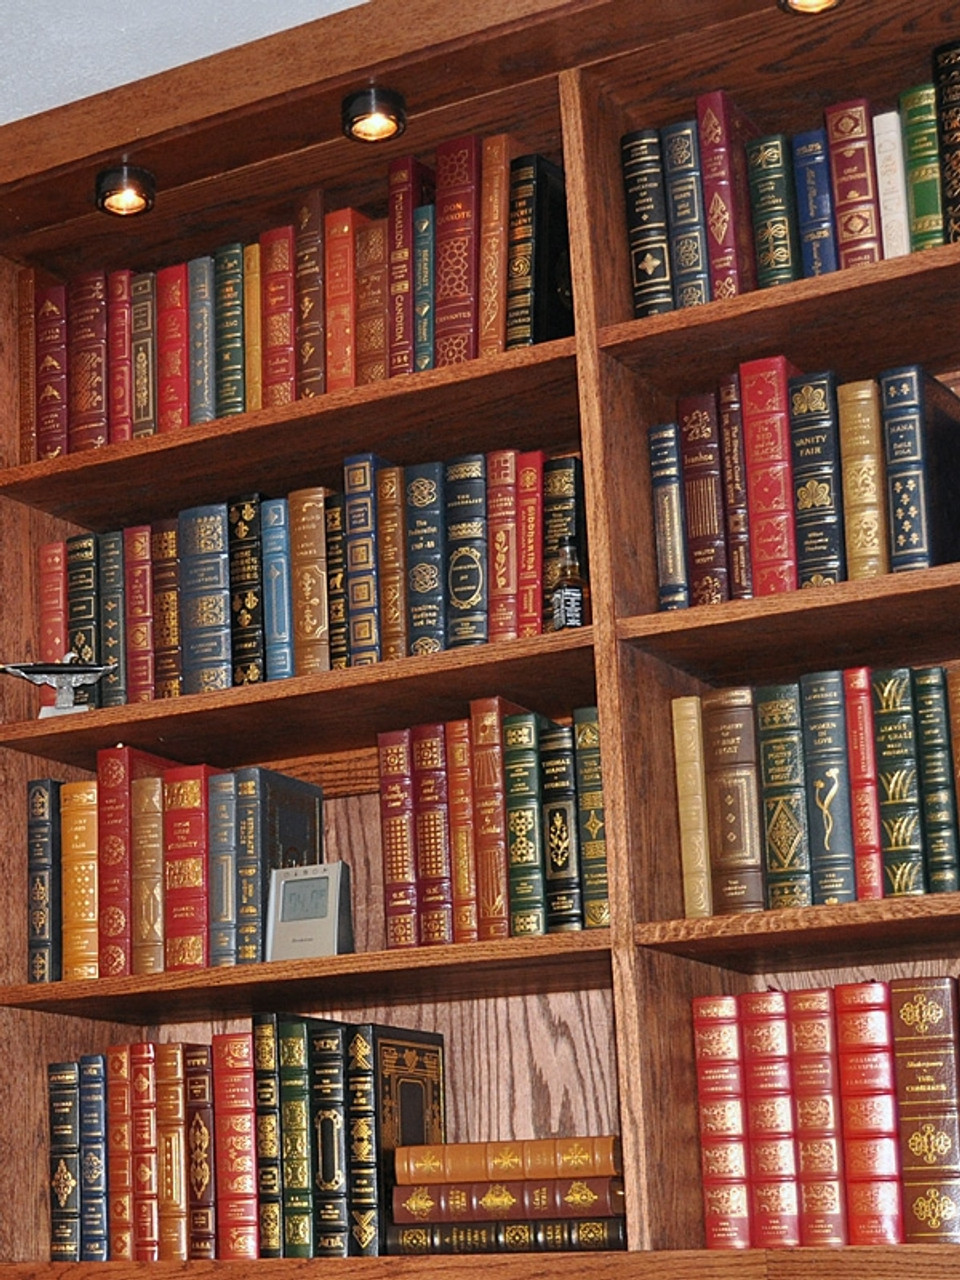 Easton Press, 100 Greatest Books Ever Written, Complete 100 Volumes [Very Fine]